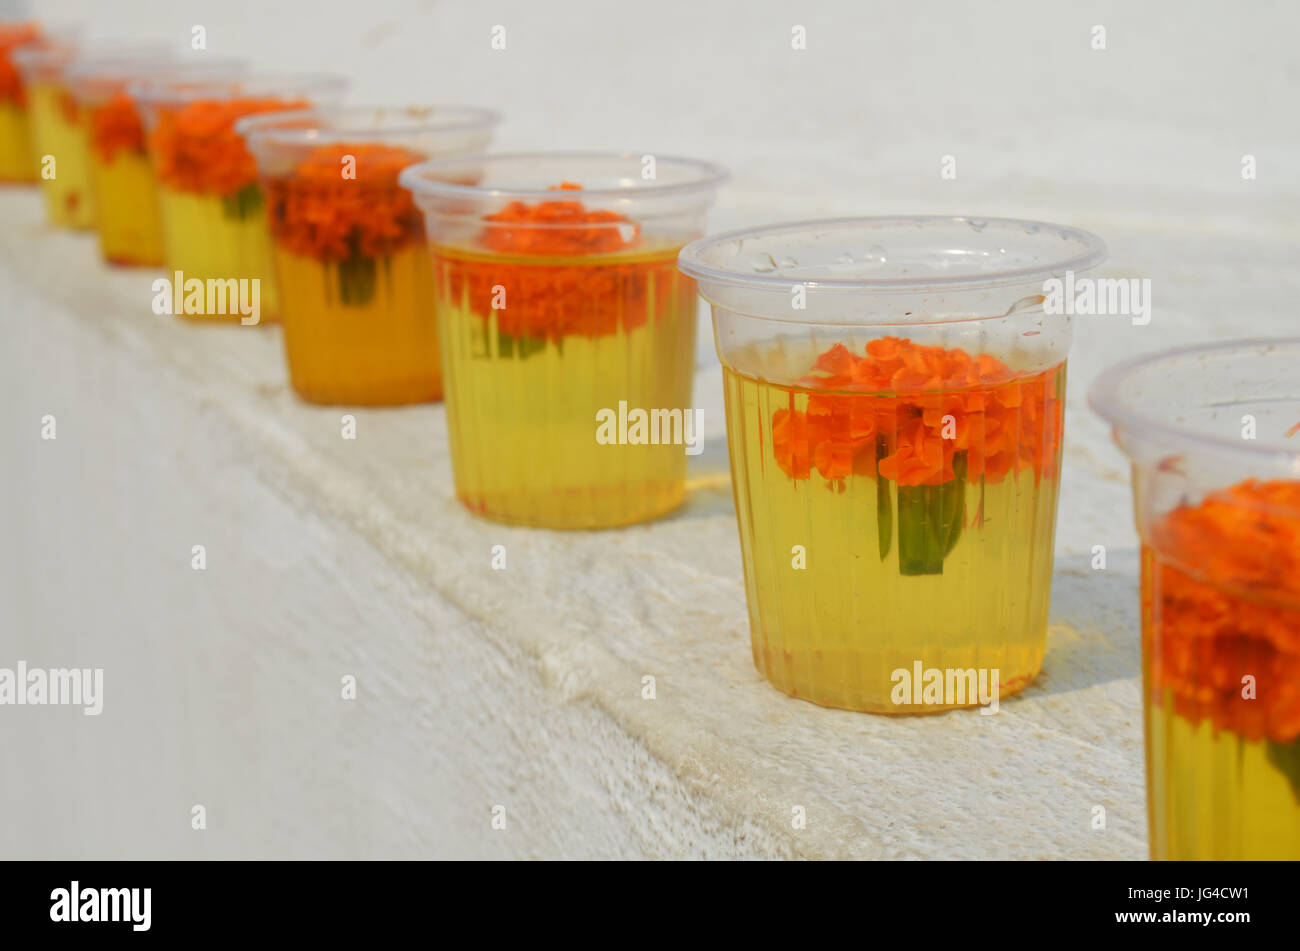 Glasses with water and carnation flowers at The Great stupa Bodnath in Kathmandu, Nepal. - Stock Image